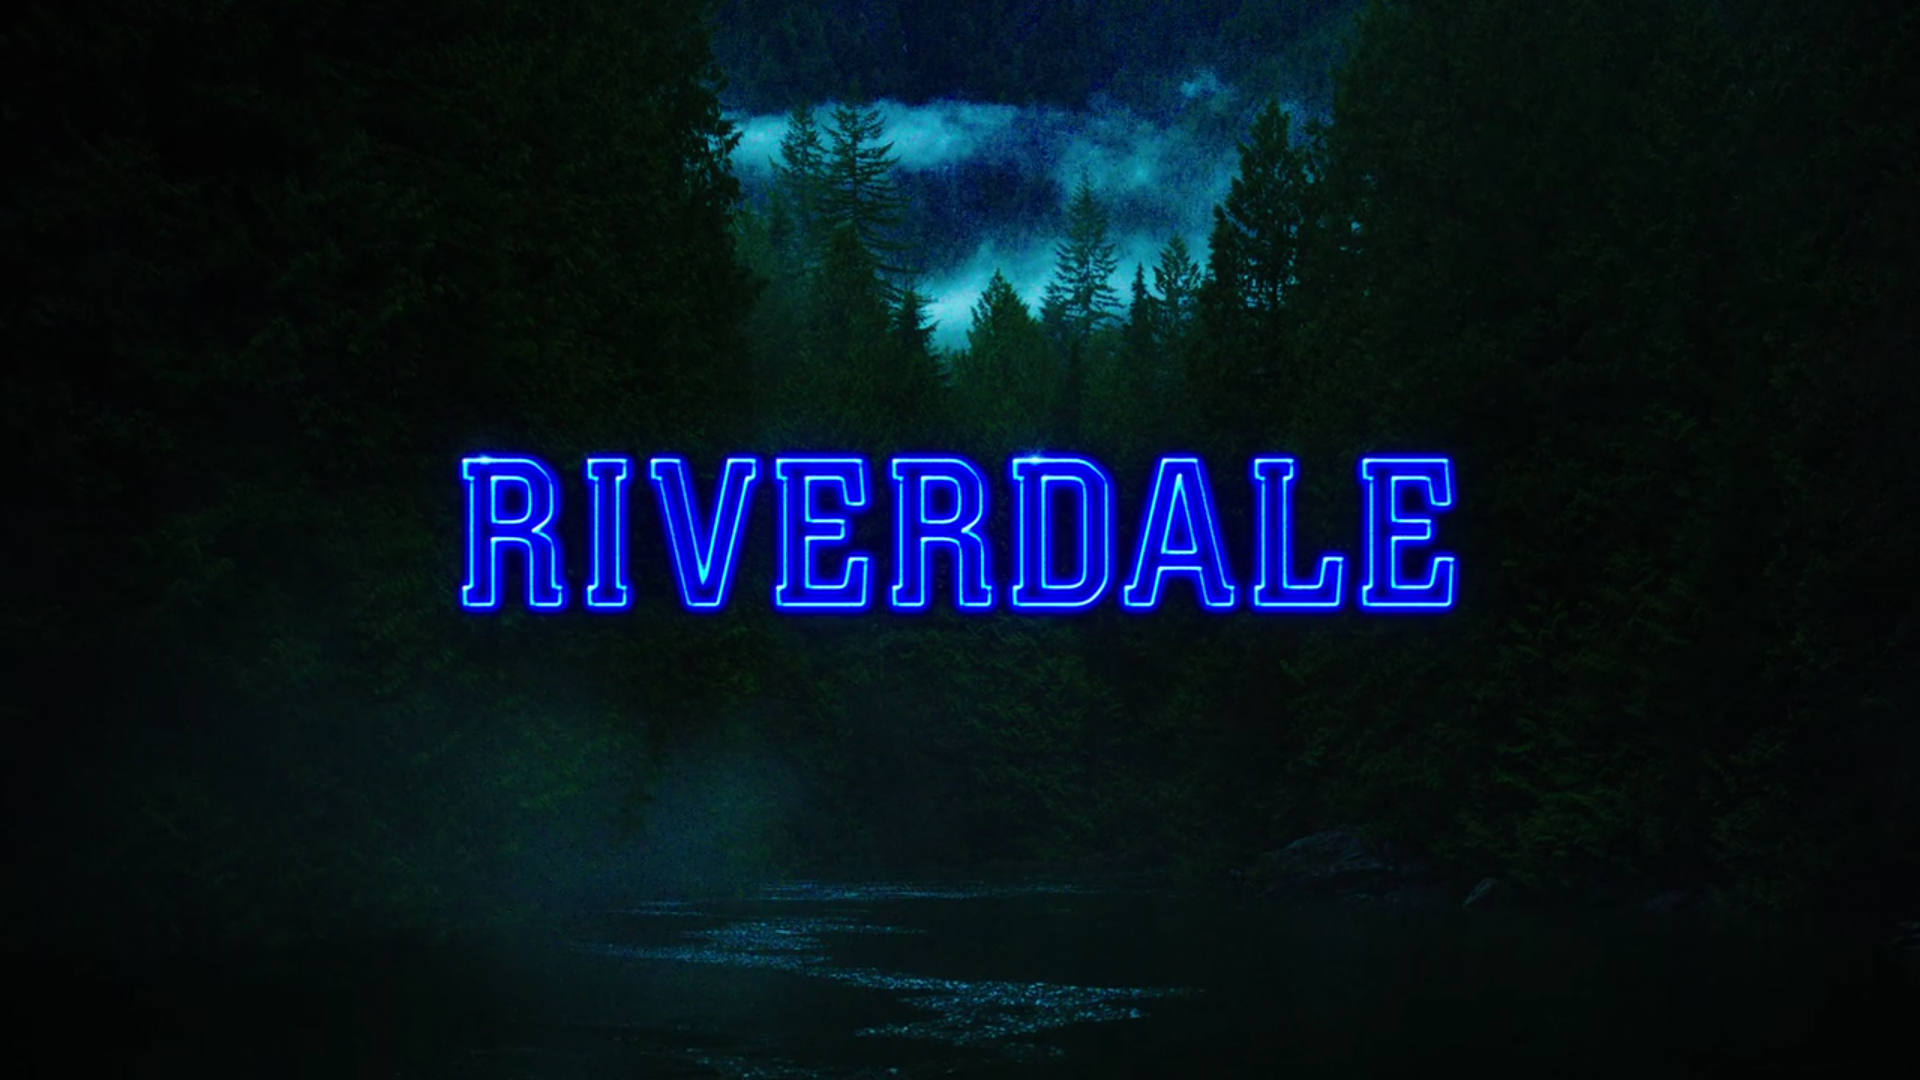 Riverdale Wallpaper: American Of London